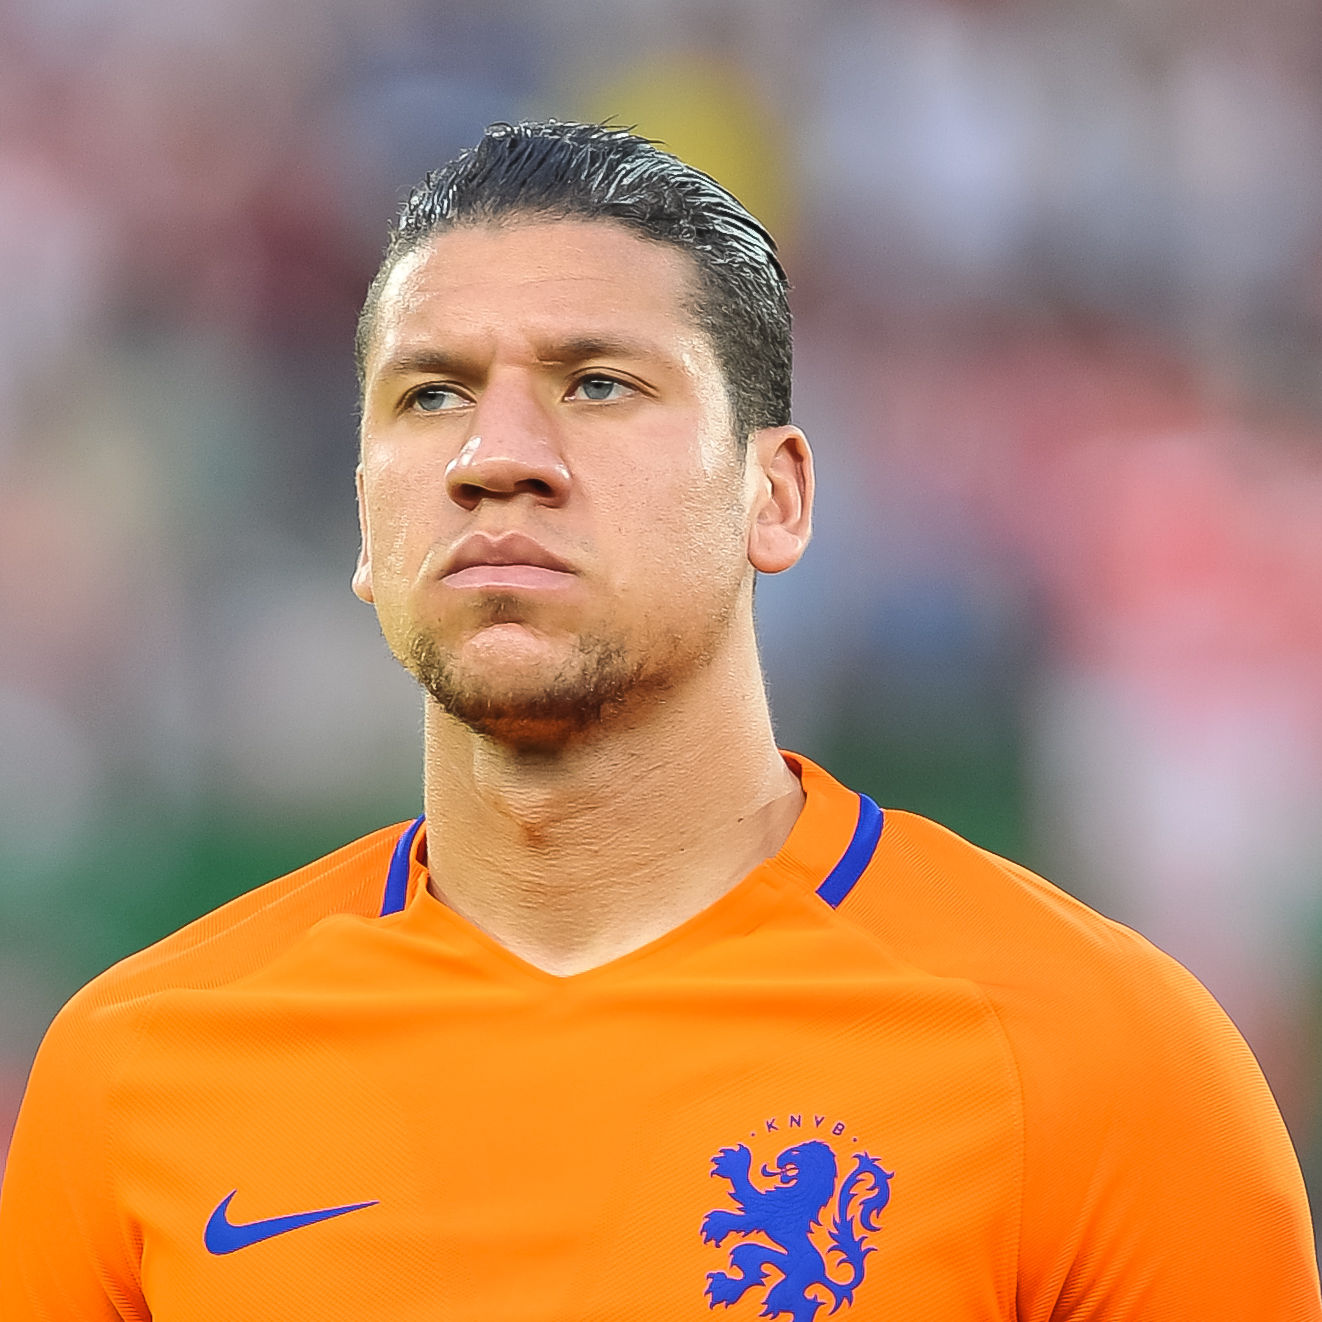 The 26-year old son of father (?) and mother(?) Jeffrey Bruma in 2018 photo. Jeffrey Bruma earned a  million dollar salary - leaving the net worth at 4.3 million in 2018